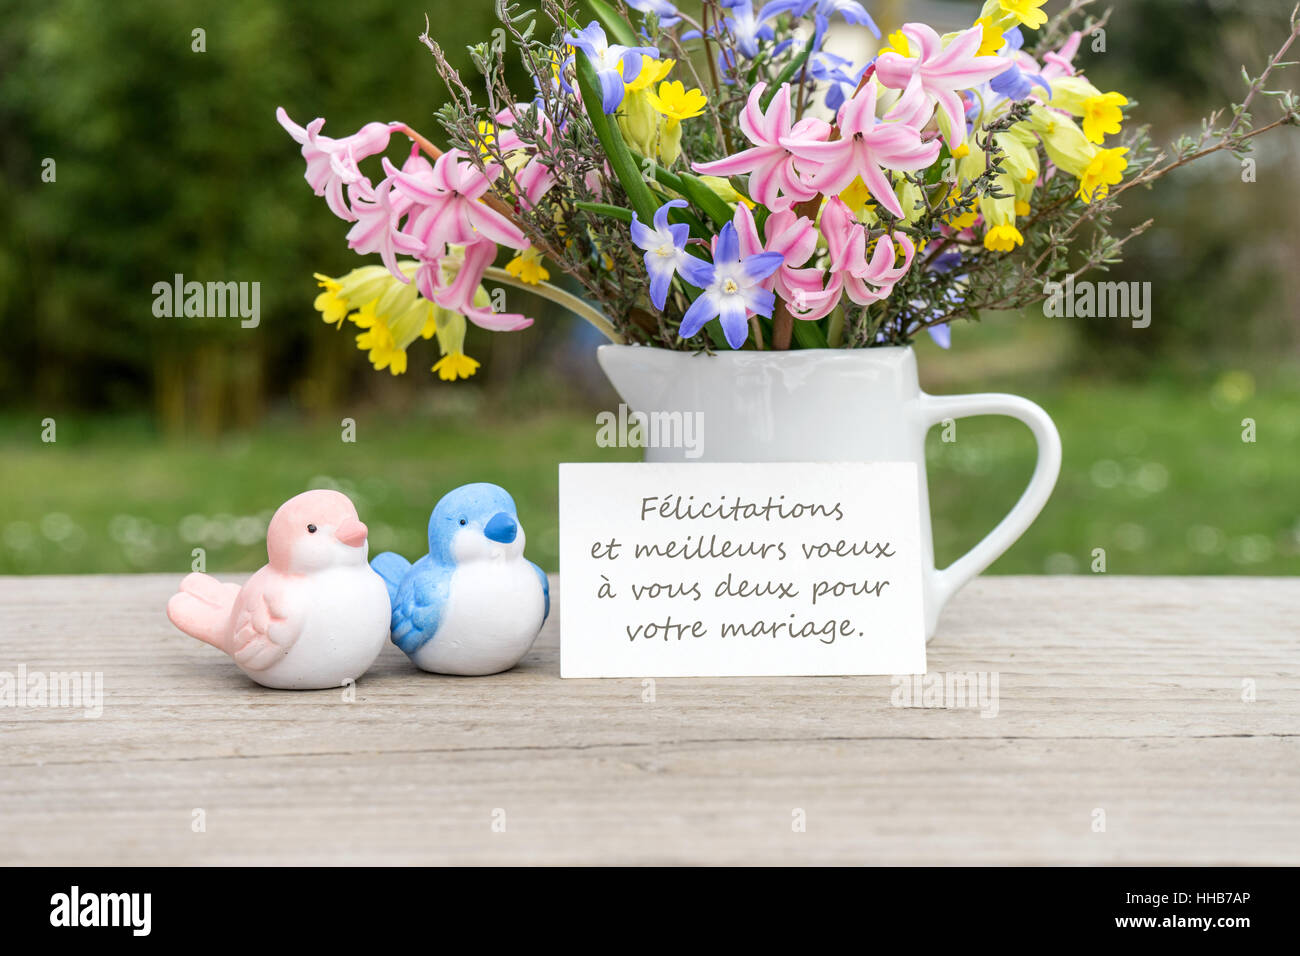 French Greeting Card With The Text The Very Best Wishes For The